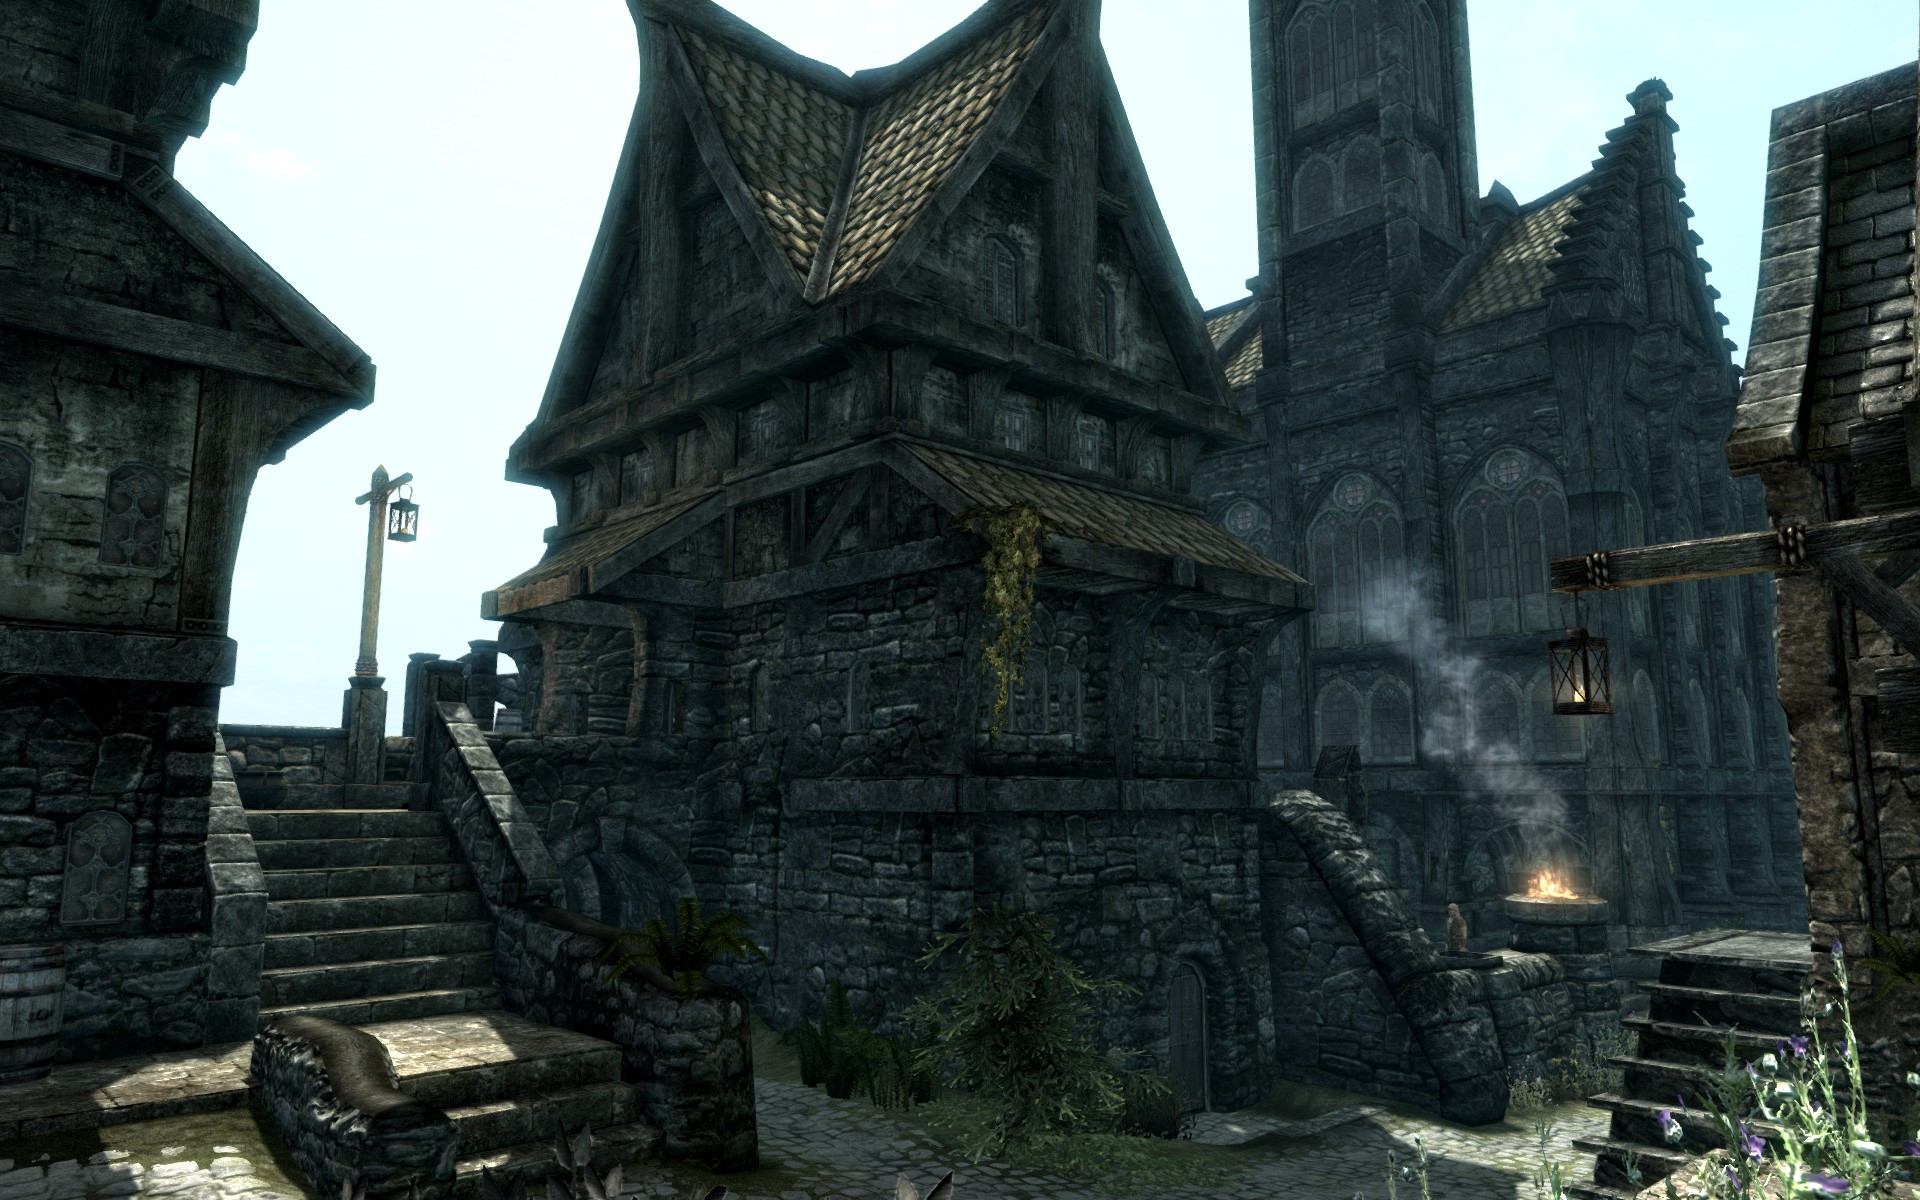 Skyrim Mod Breathes New Life Into The Games Cities Proudspire Manor Solitude